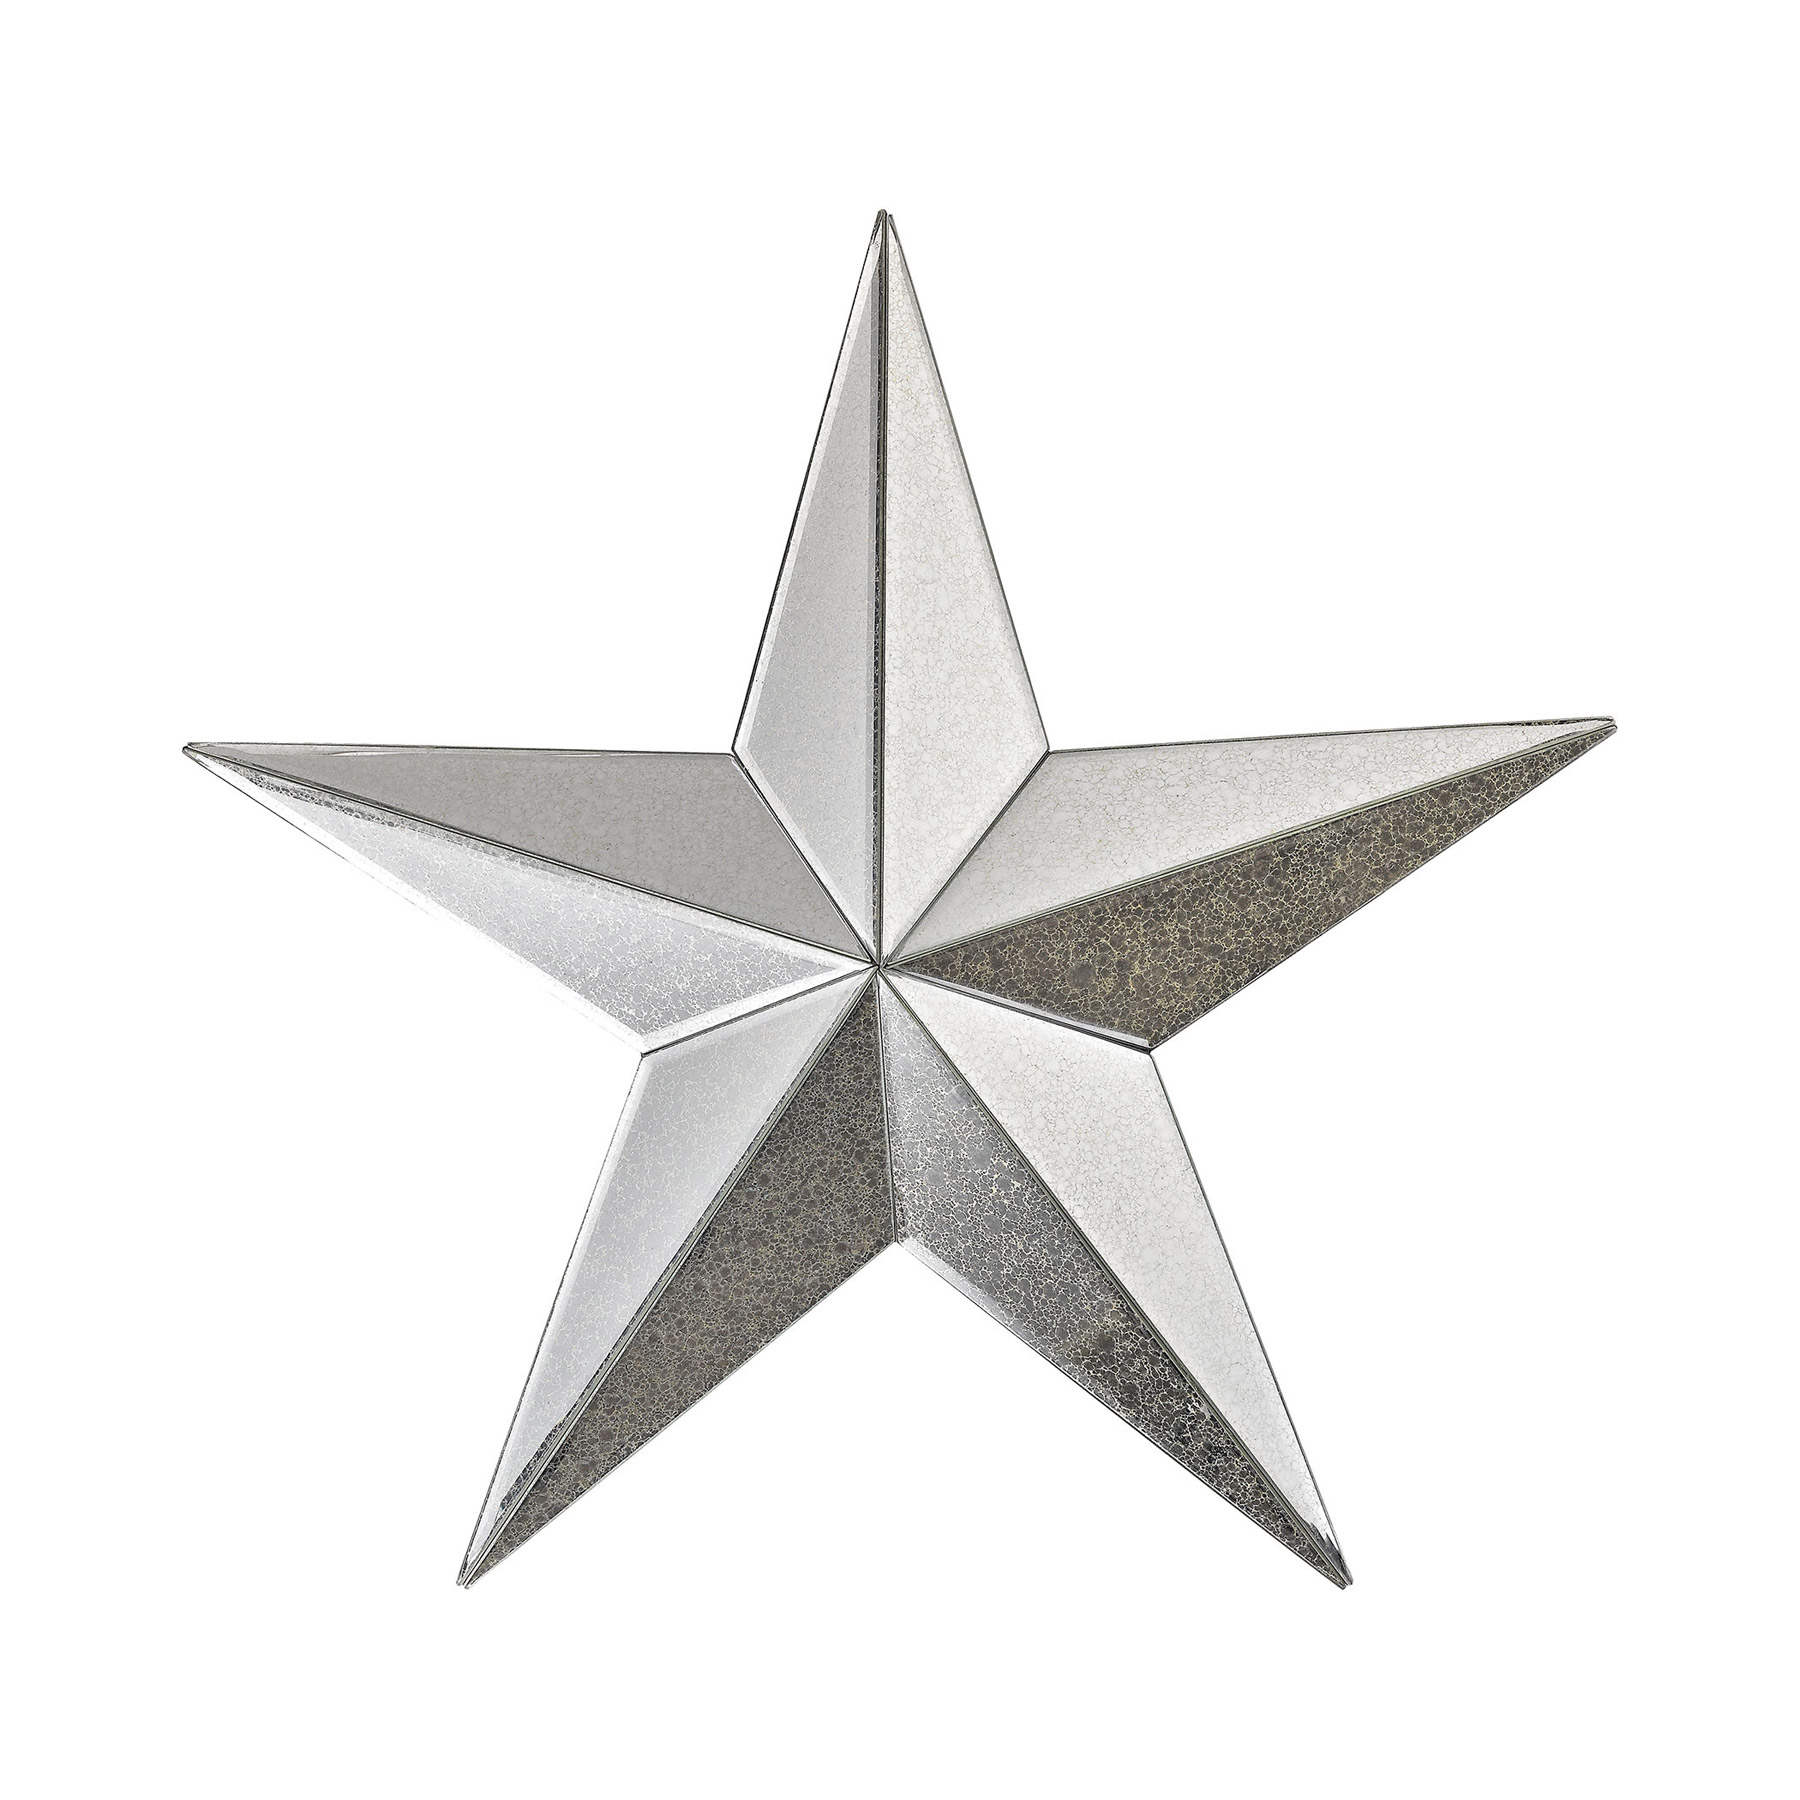 Metal Star Wall Decor 1114 180 Wishmaker Antiqued Mirrored Star Wall Decor